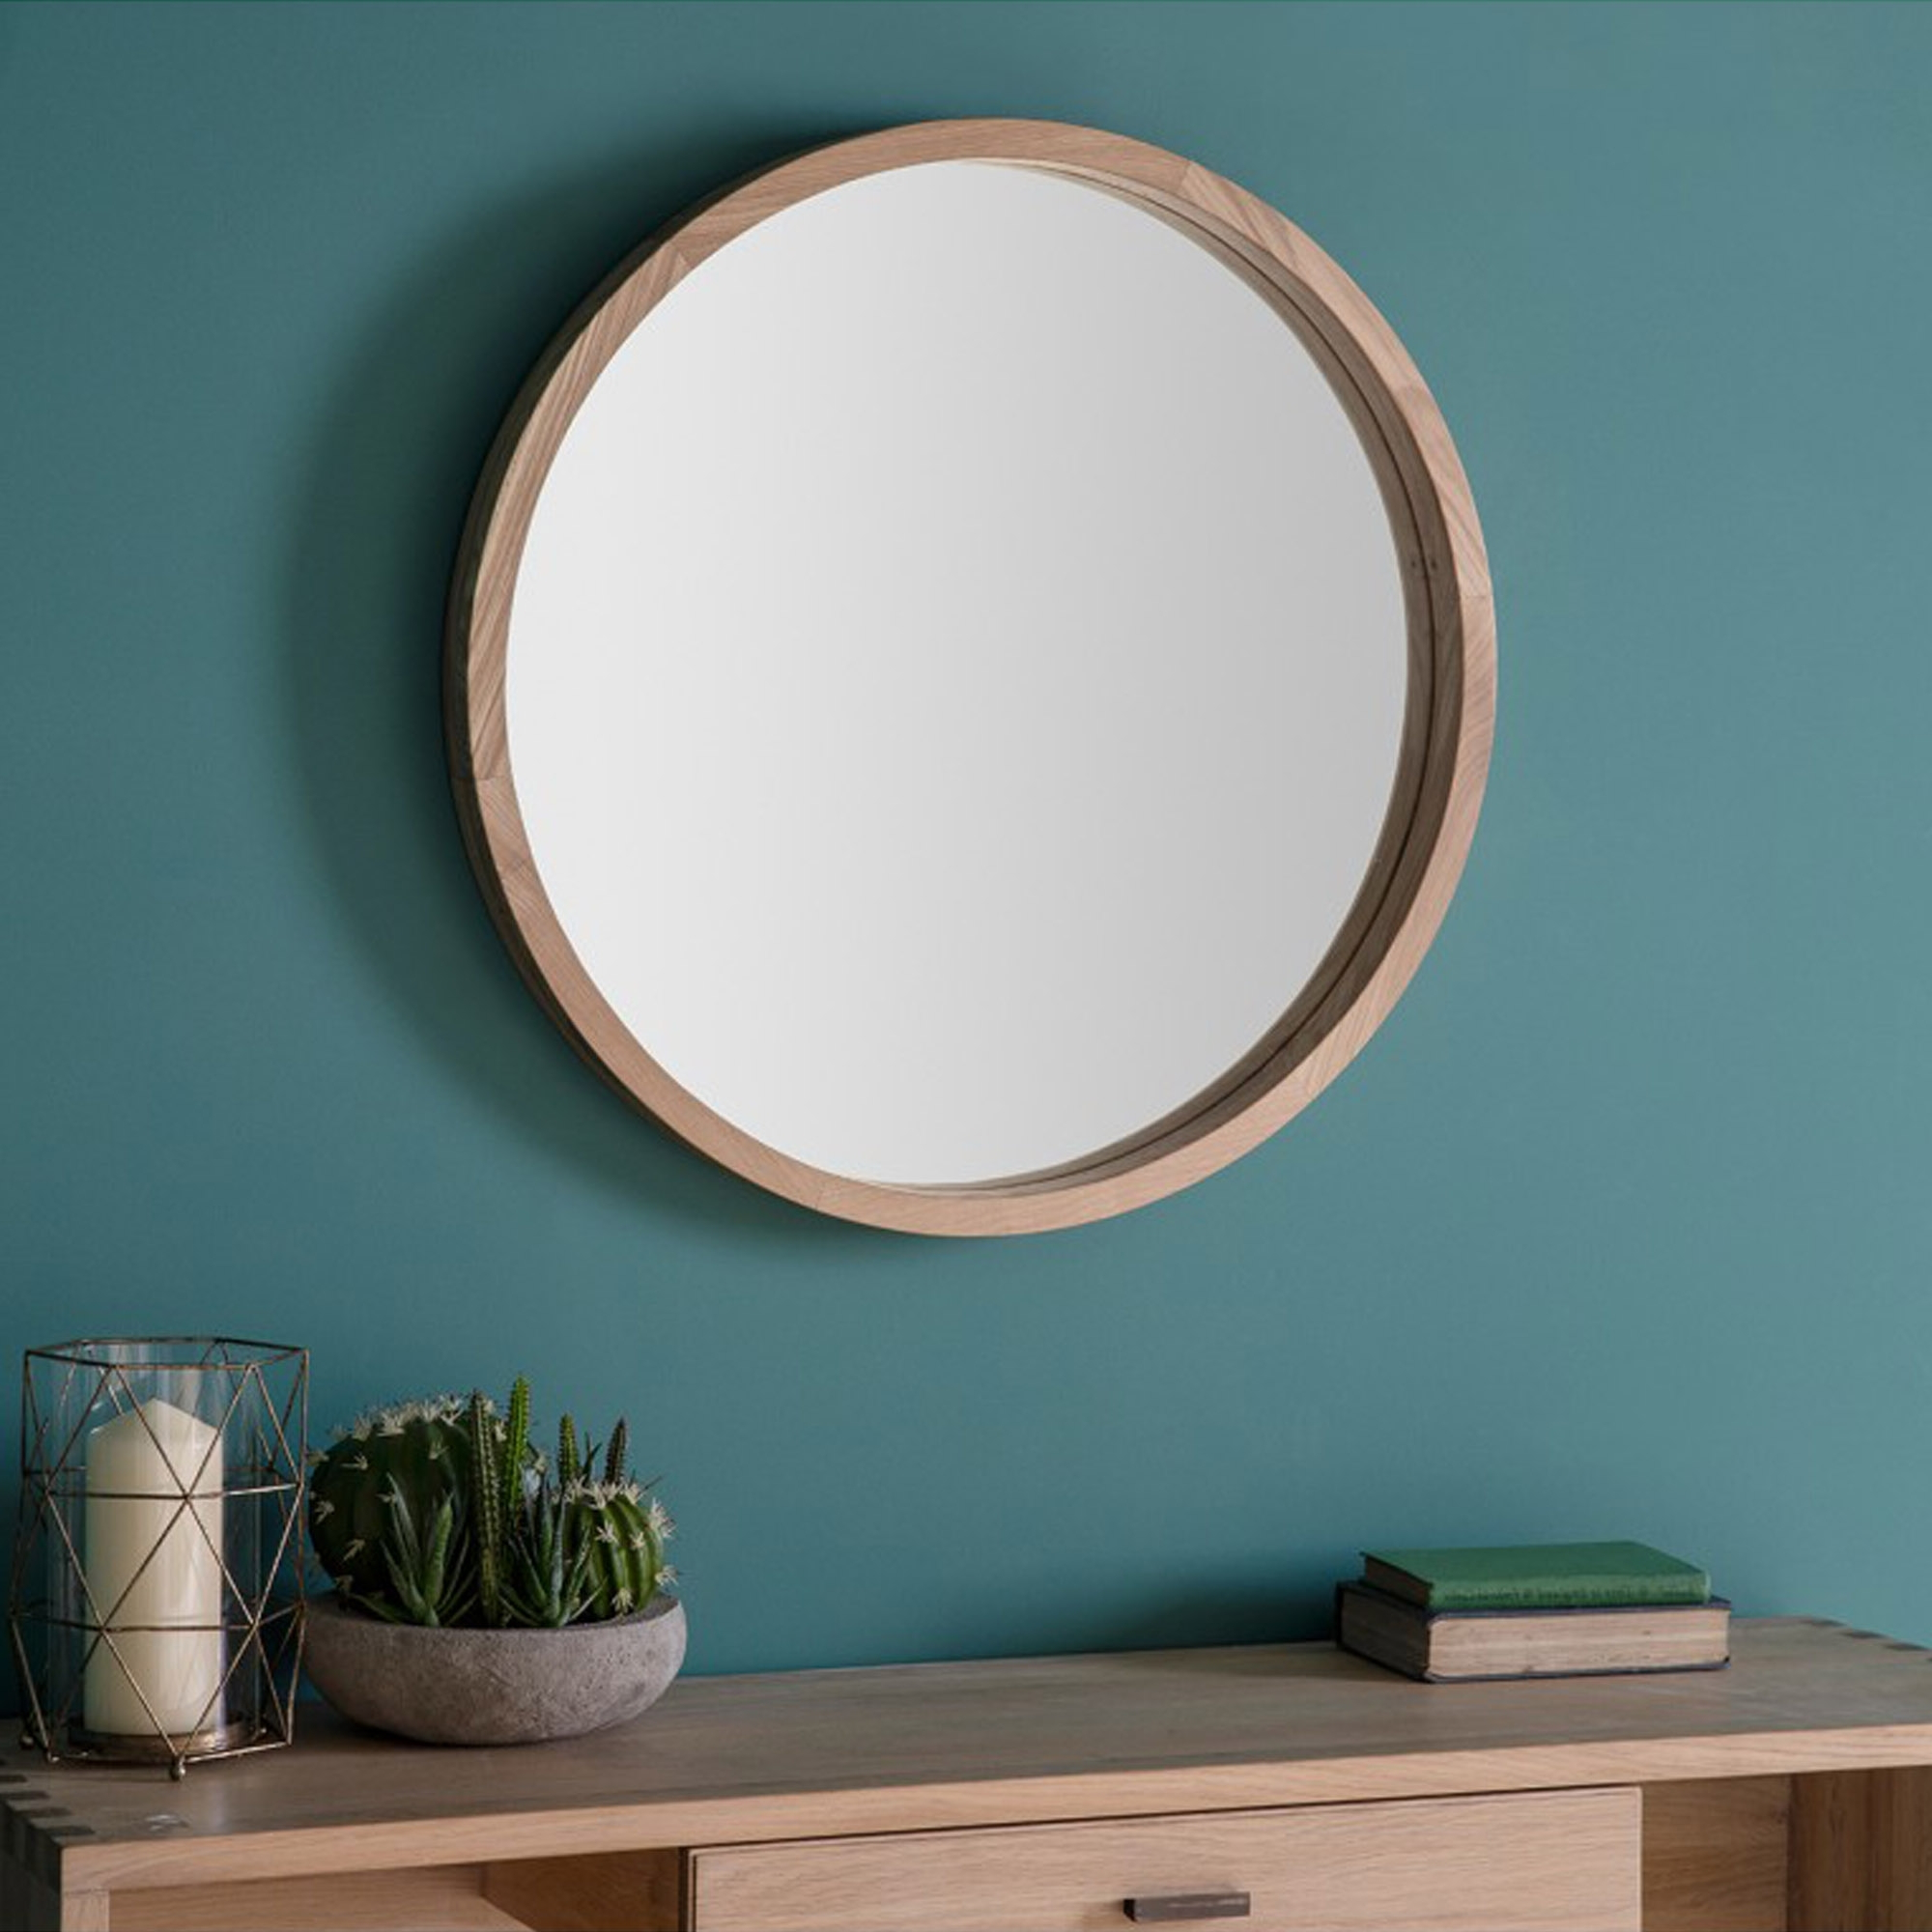 Well Known Circular Wall Mirrors Intended For Bowman Small Round Wall Mirror (View 8 of 20)